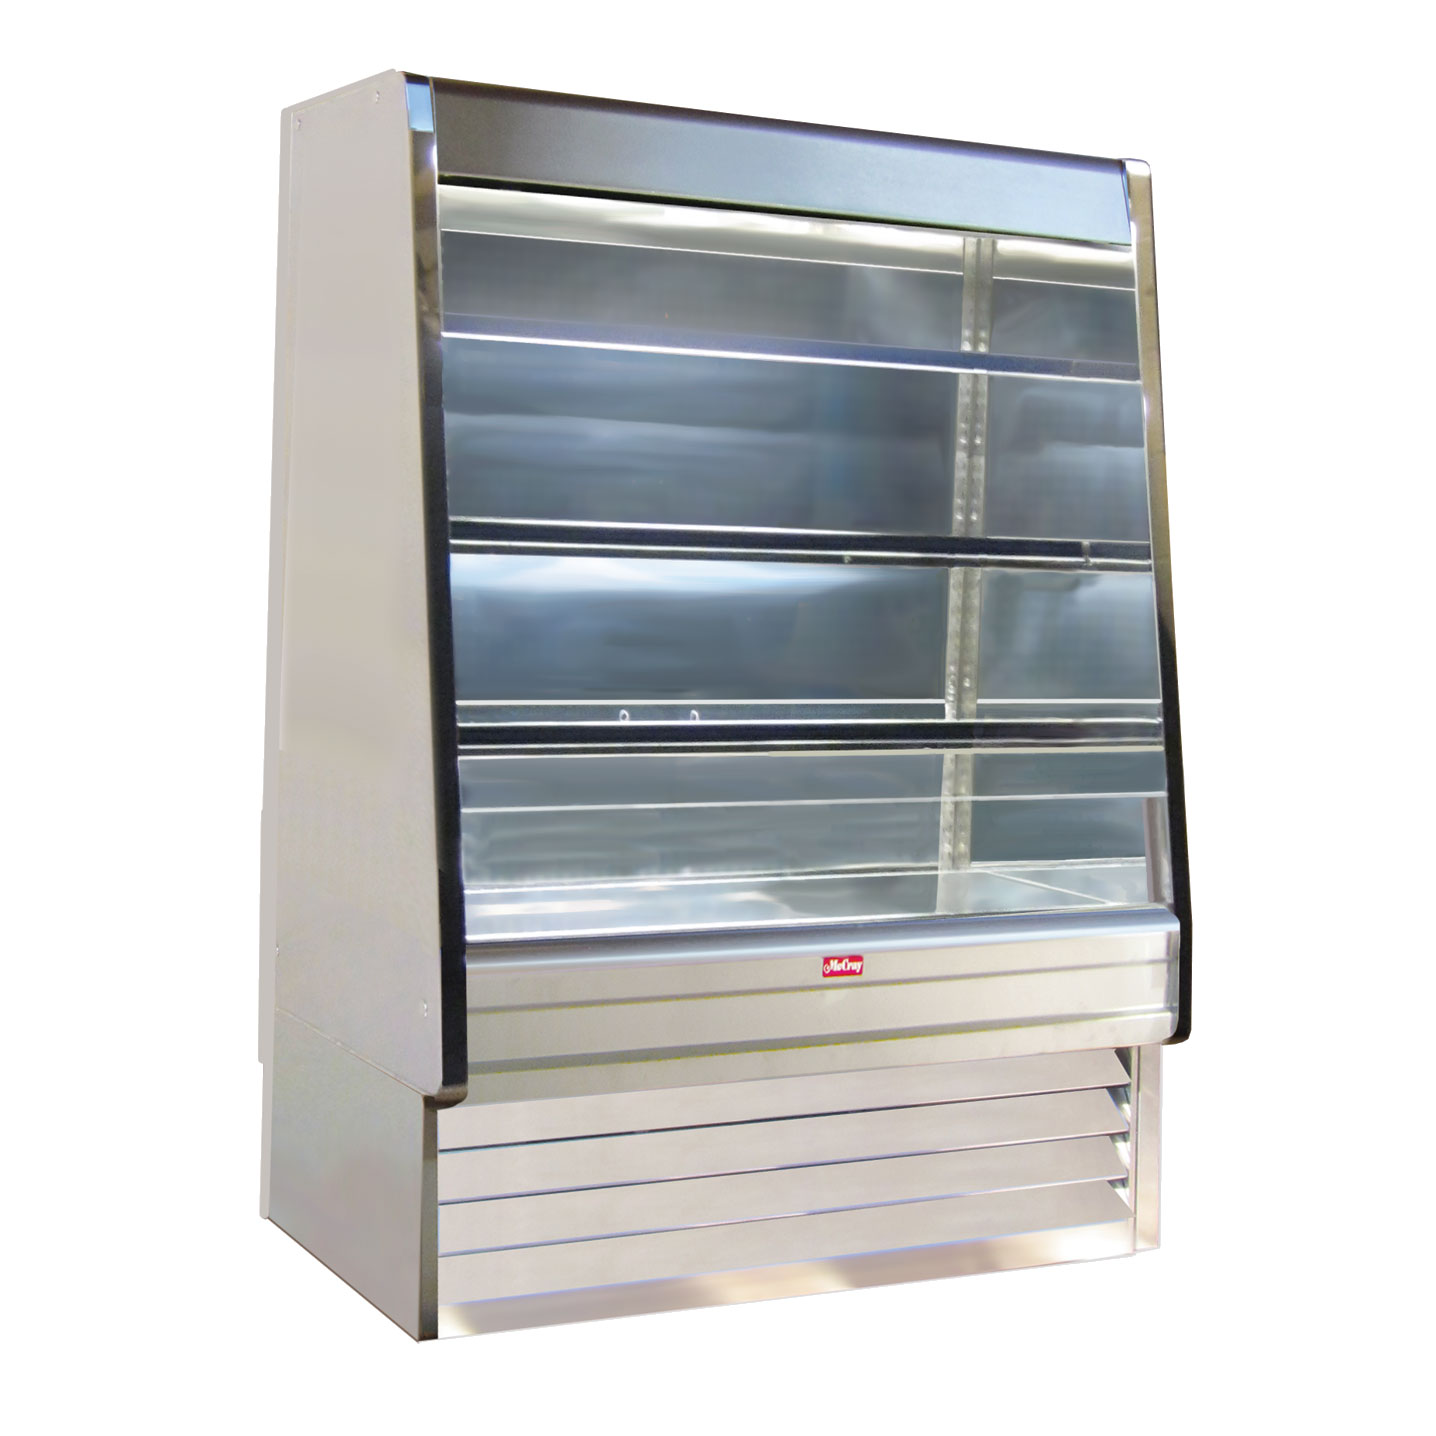 Howard-McCray SC-OD30E-4-S-LED merchandiser, open refrigerated display